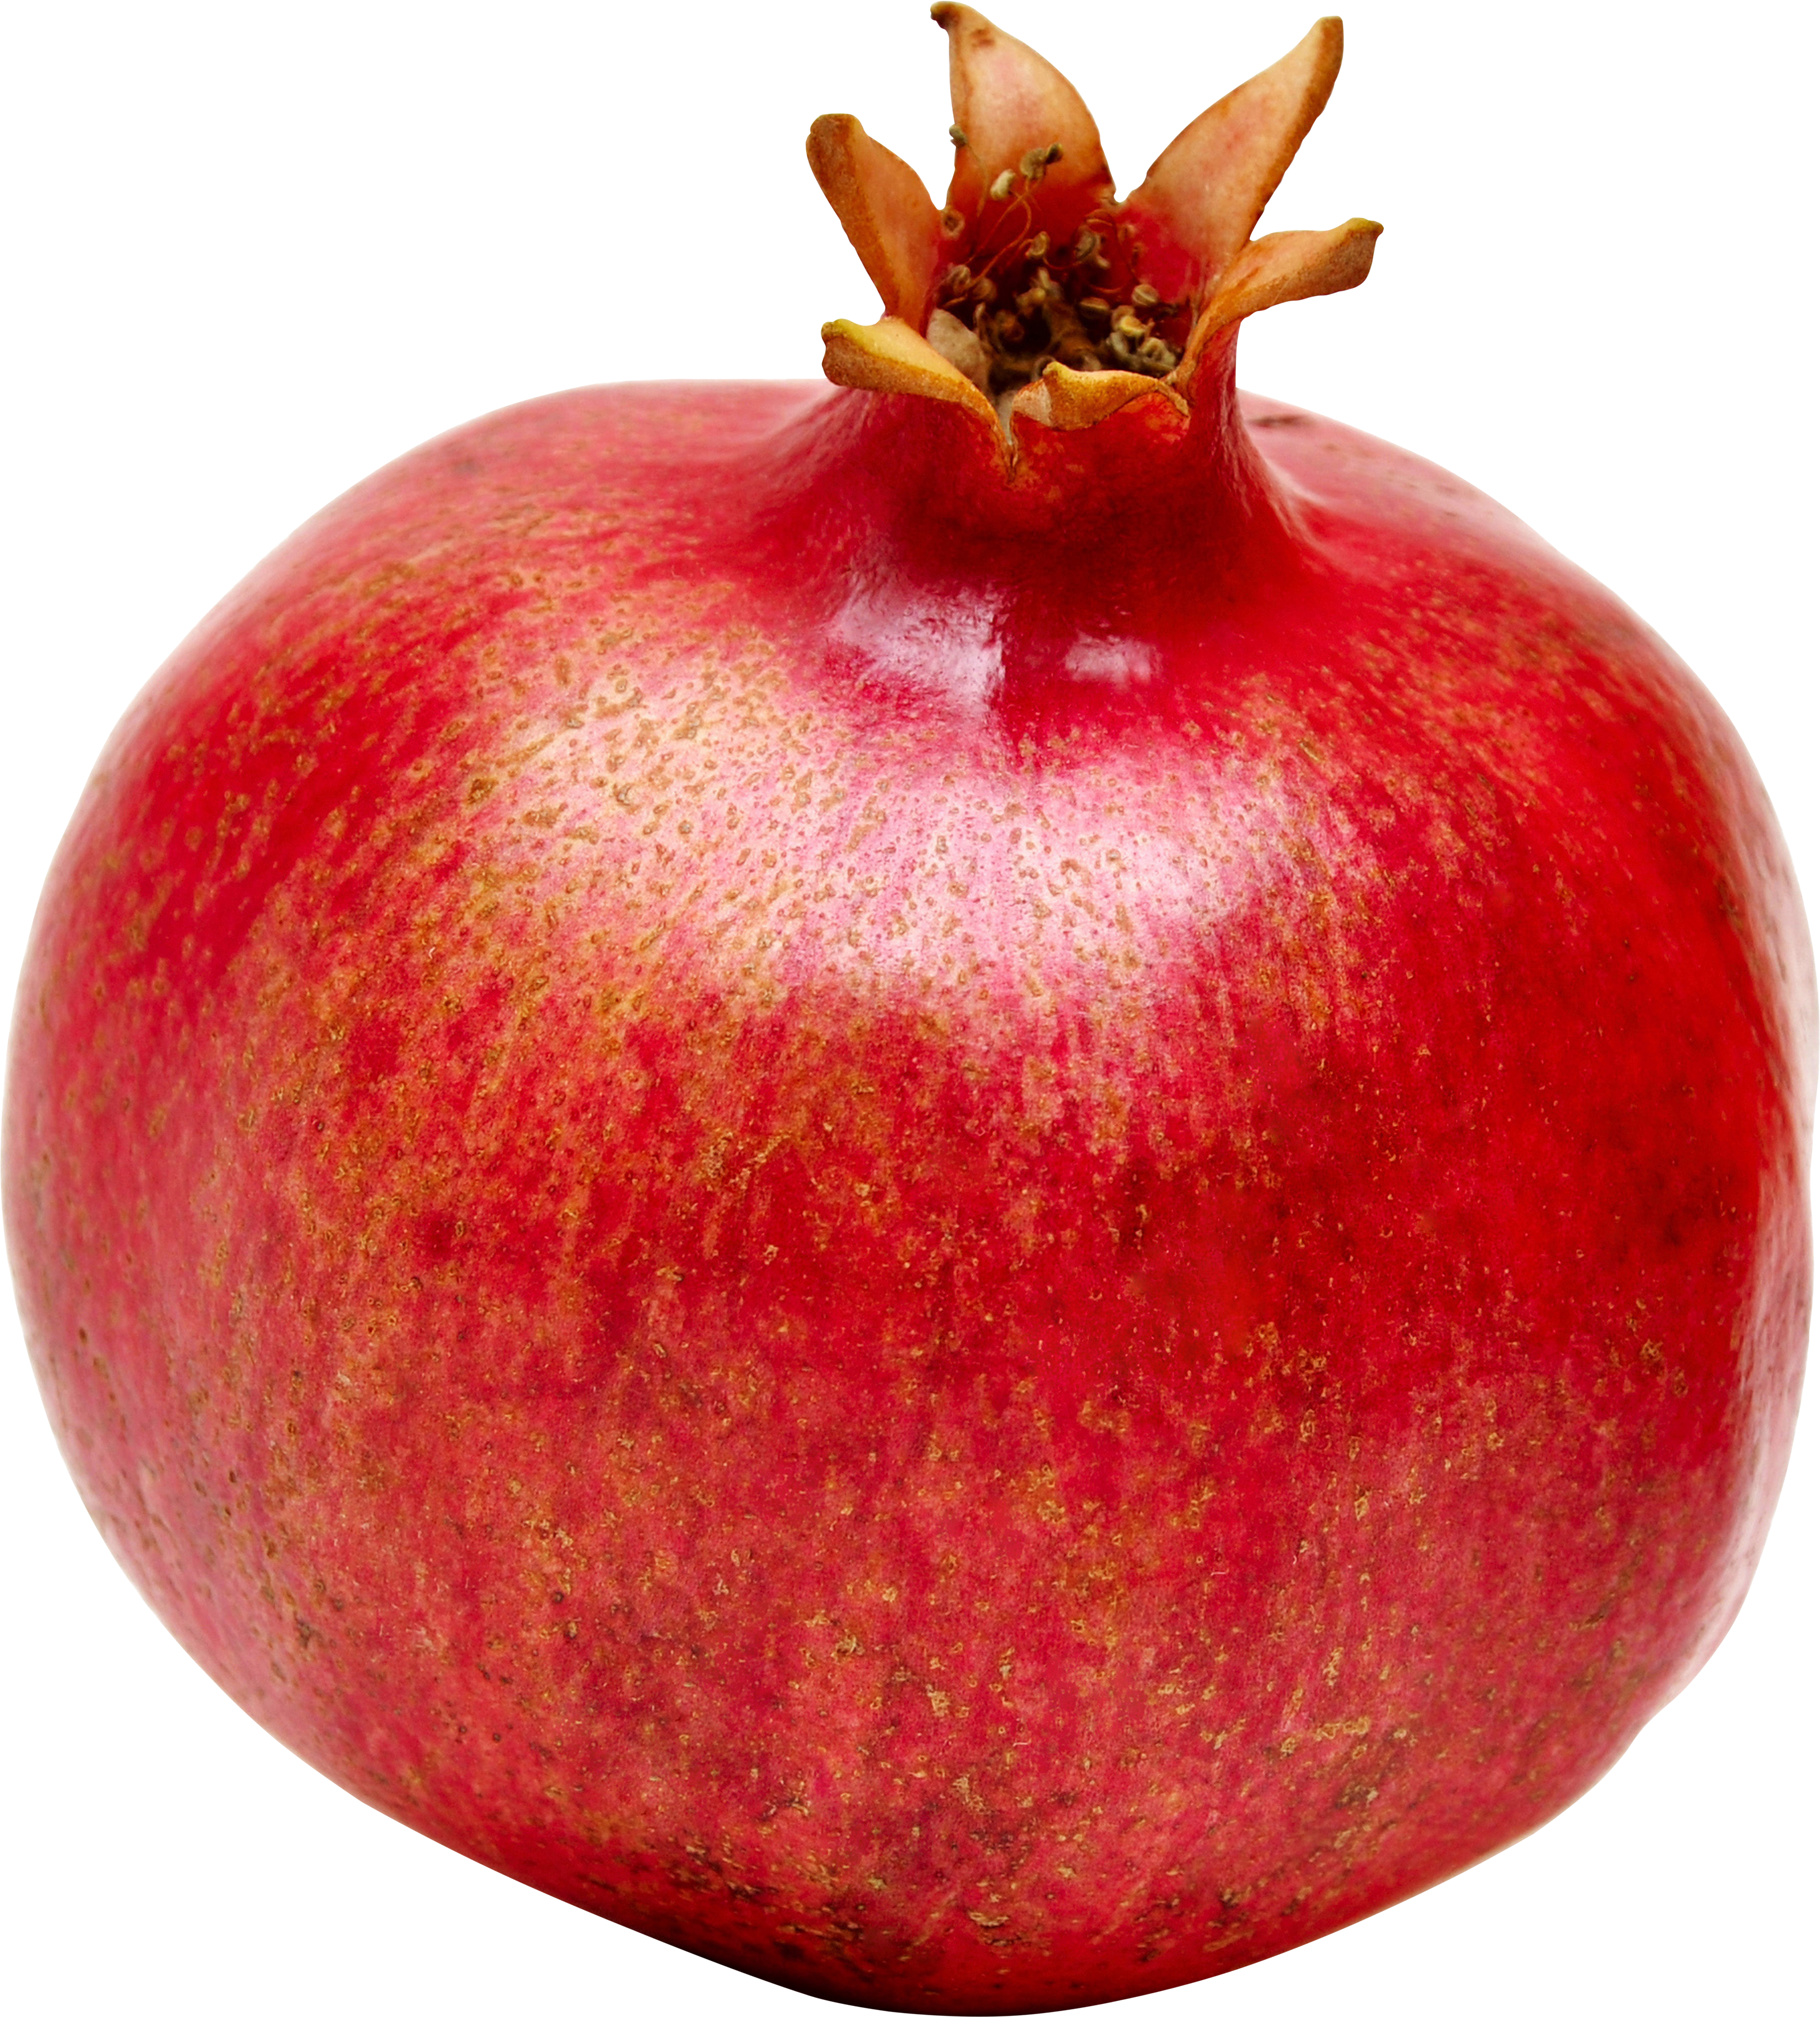 Pomegranate clipart anaar. Png images free download